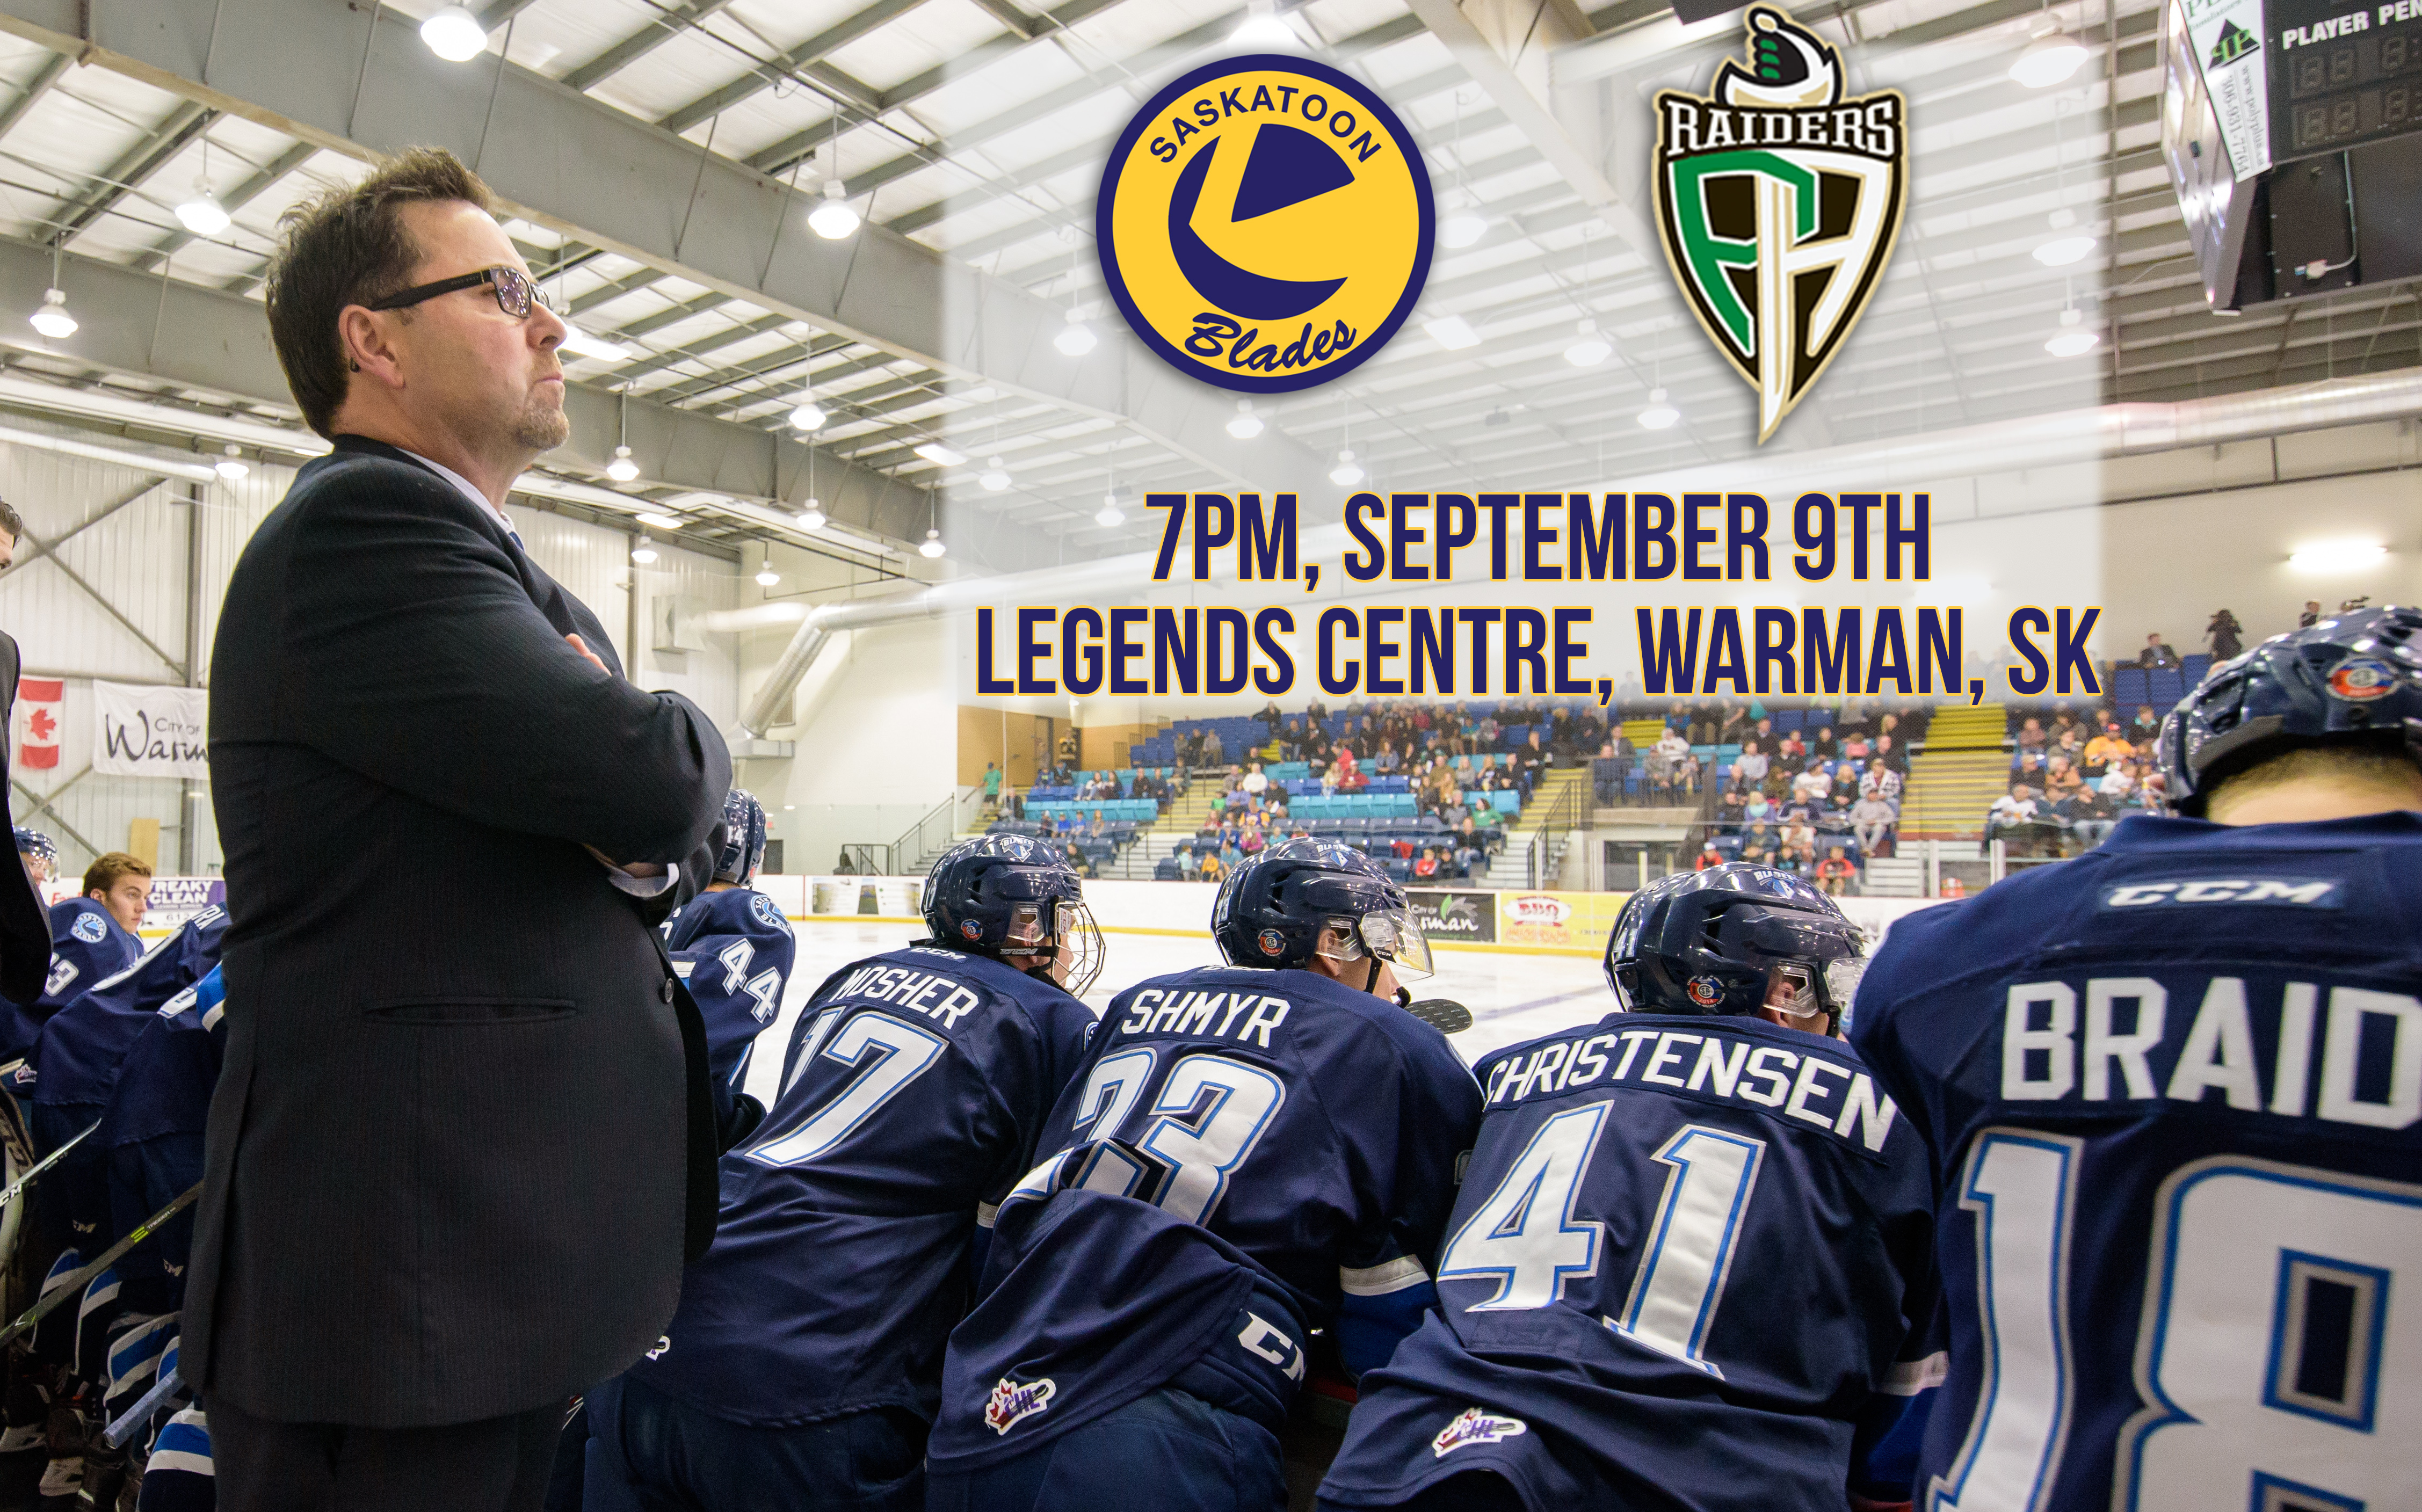 The Saskatoon blades vs The Prince Albert Raiders in Pre Season Action at the Legends Centre Warman, Saskatchewan, Canada, September 10, 2016